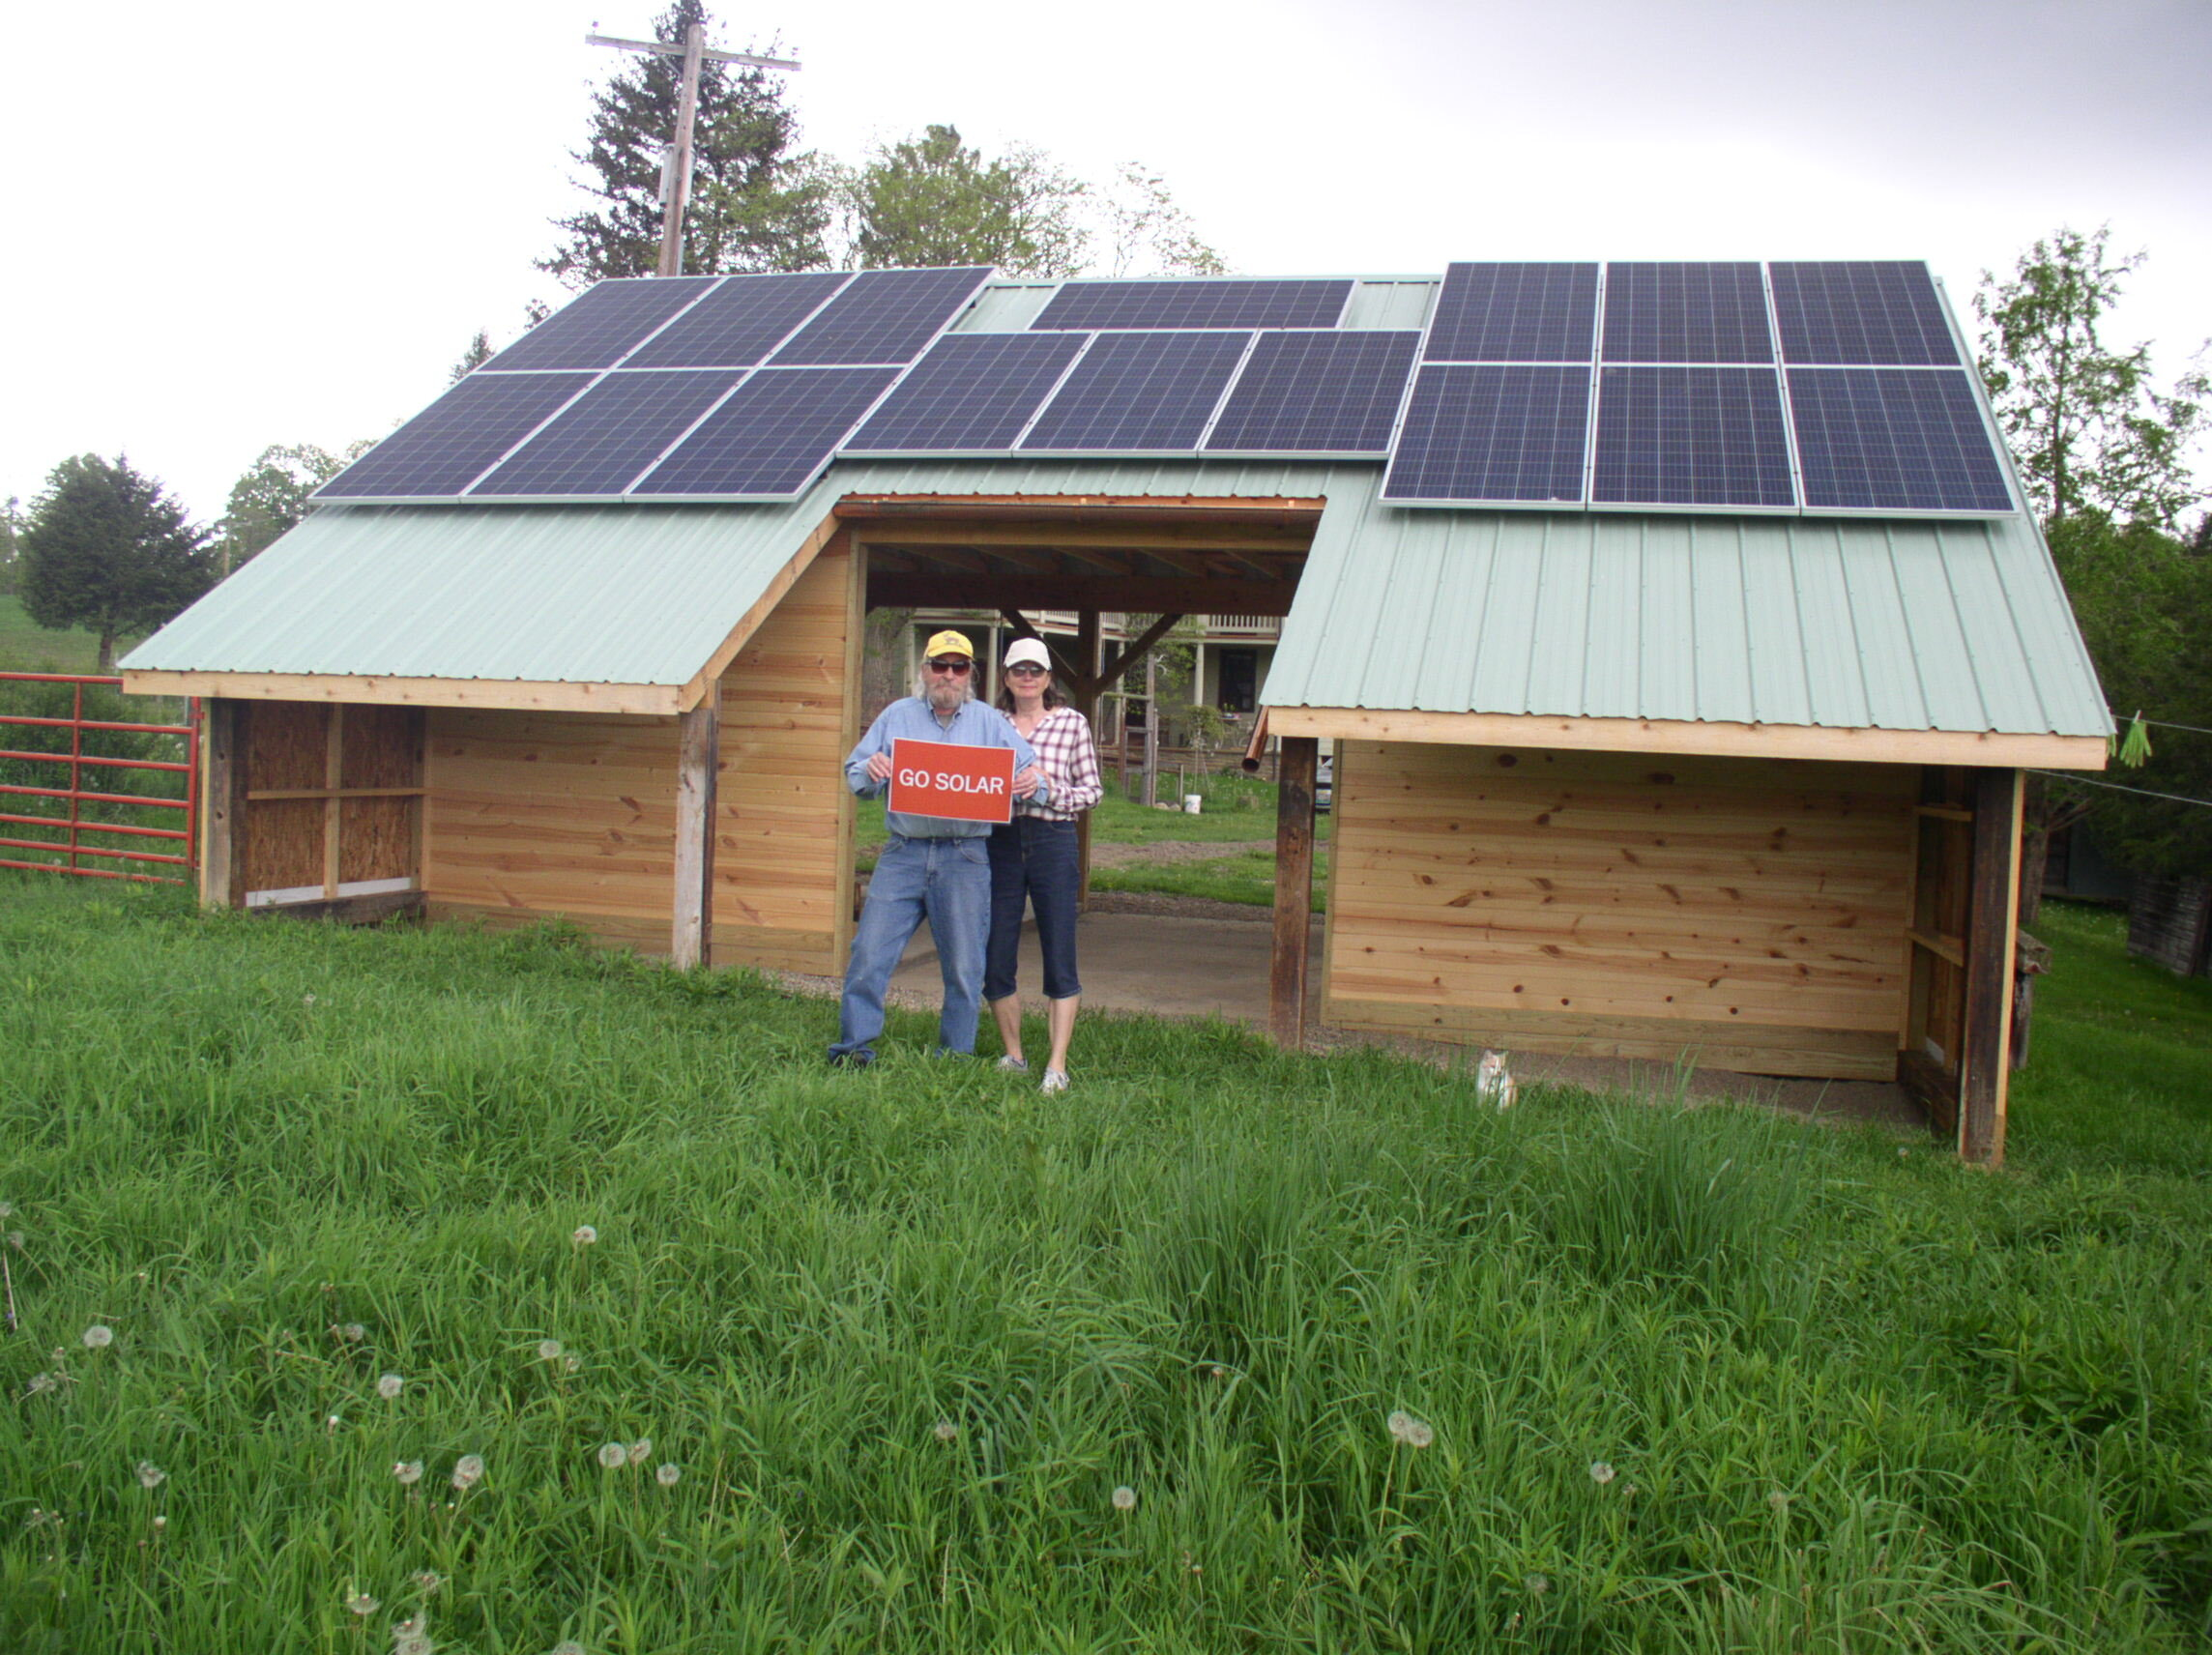 Solar owners in southwestern PA